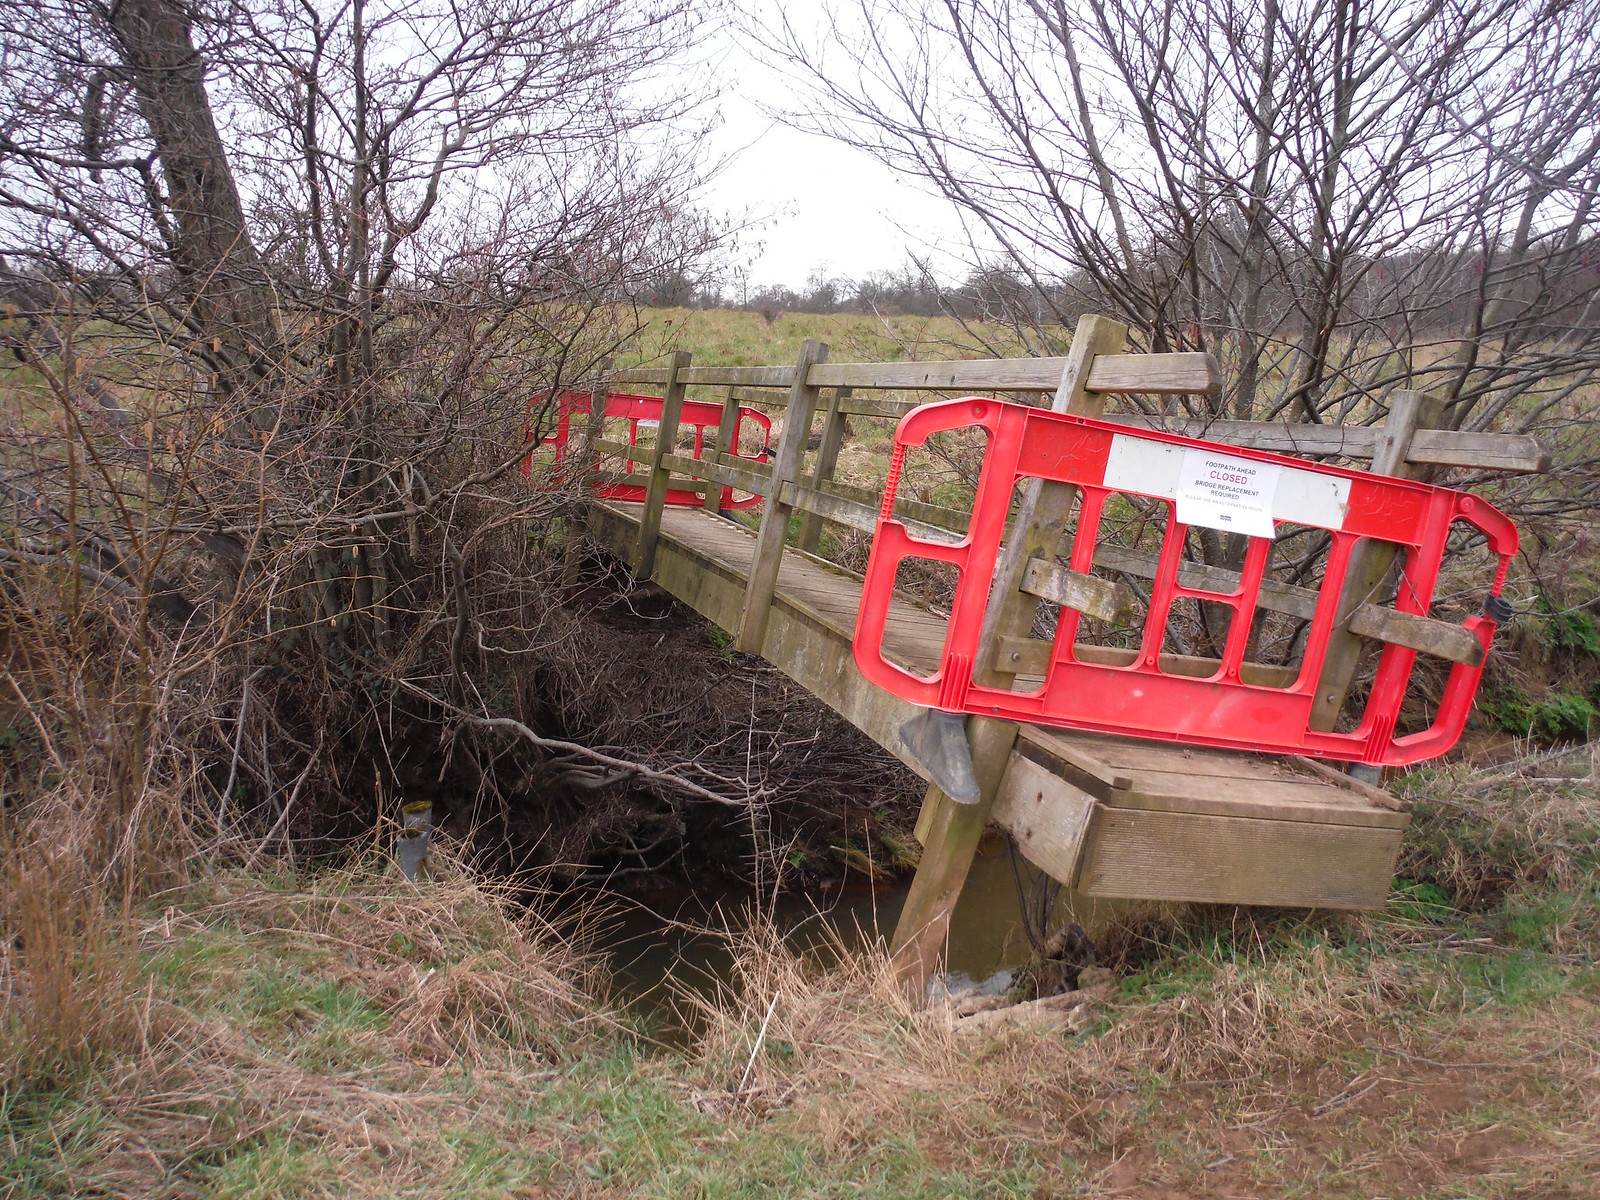 Footbridge in Buxted Park crossing an Uck tributary, lifted by winter flooding SWC Walk 262 Uckfield to Buxted